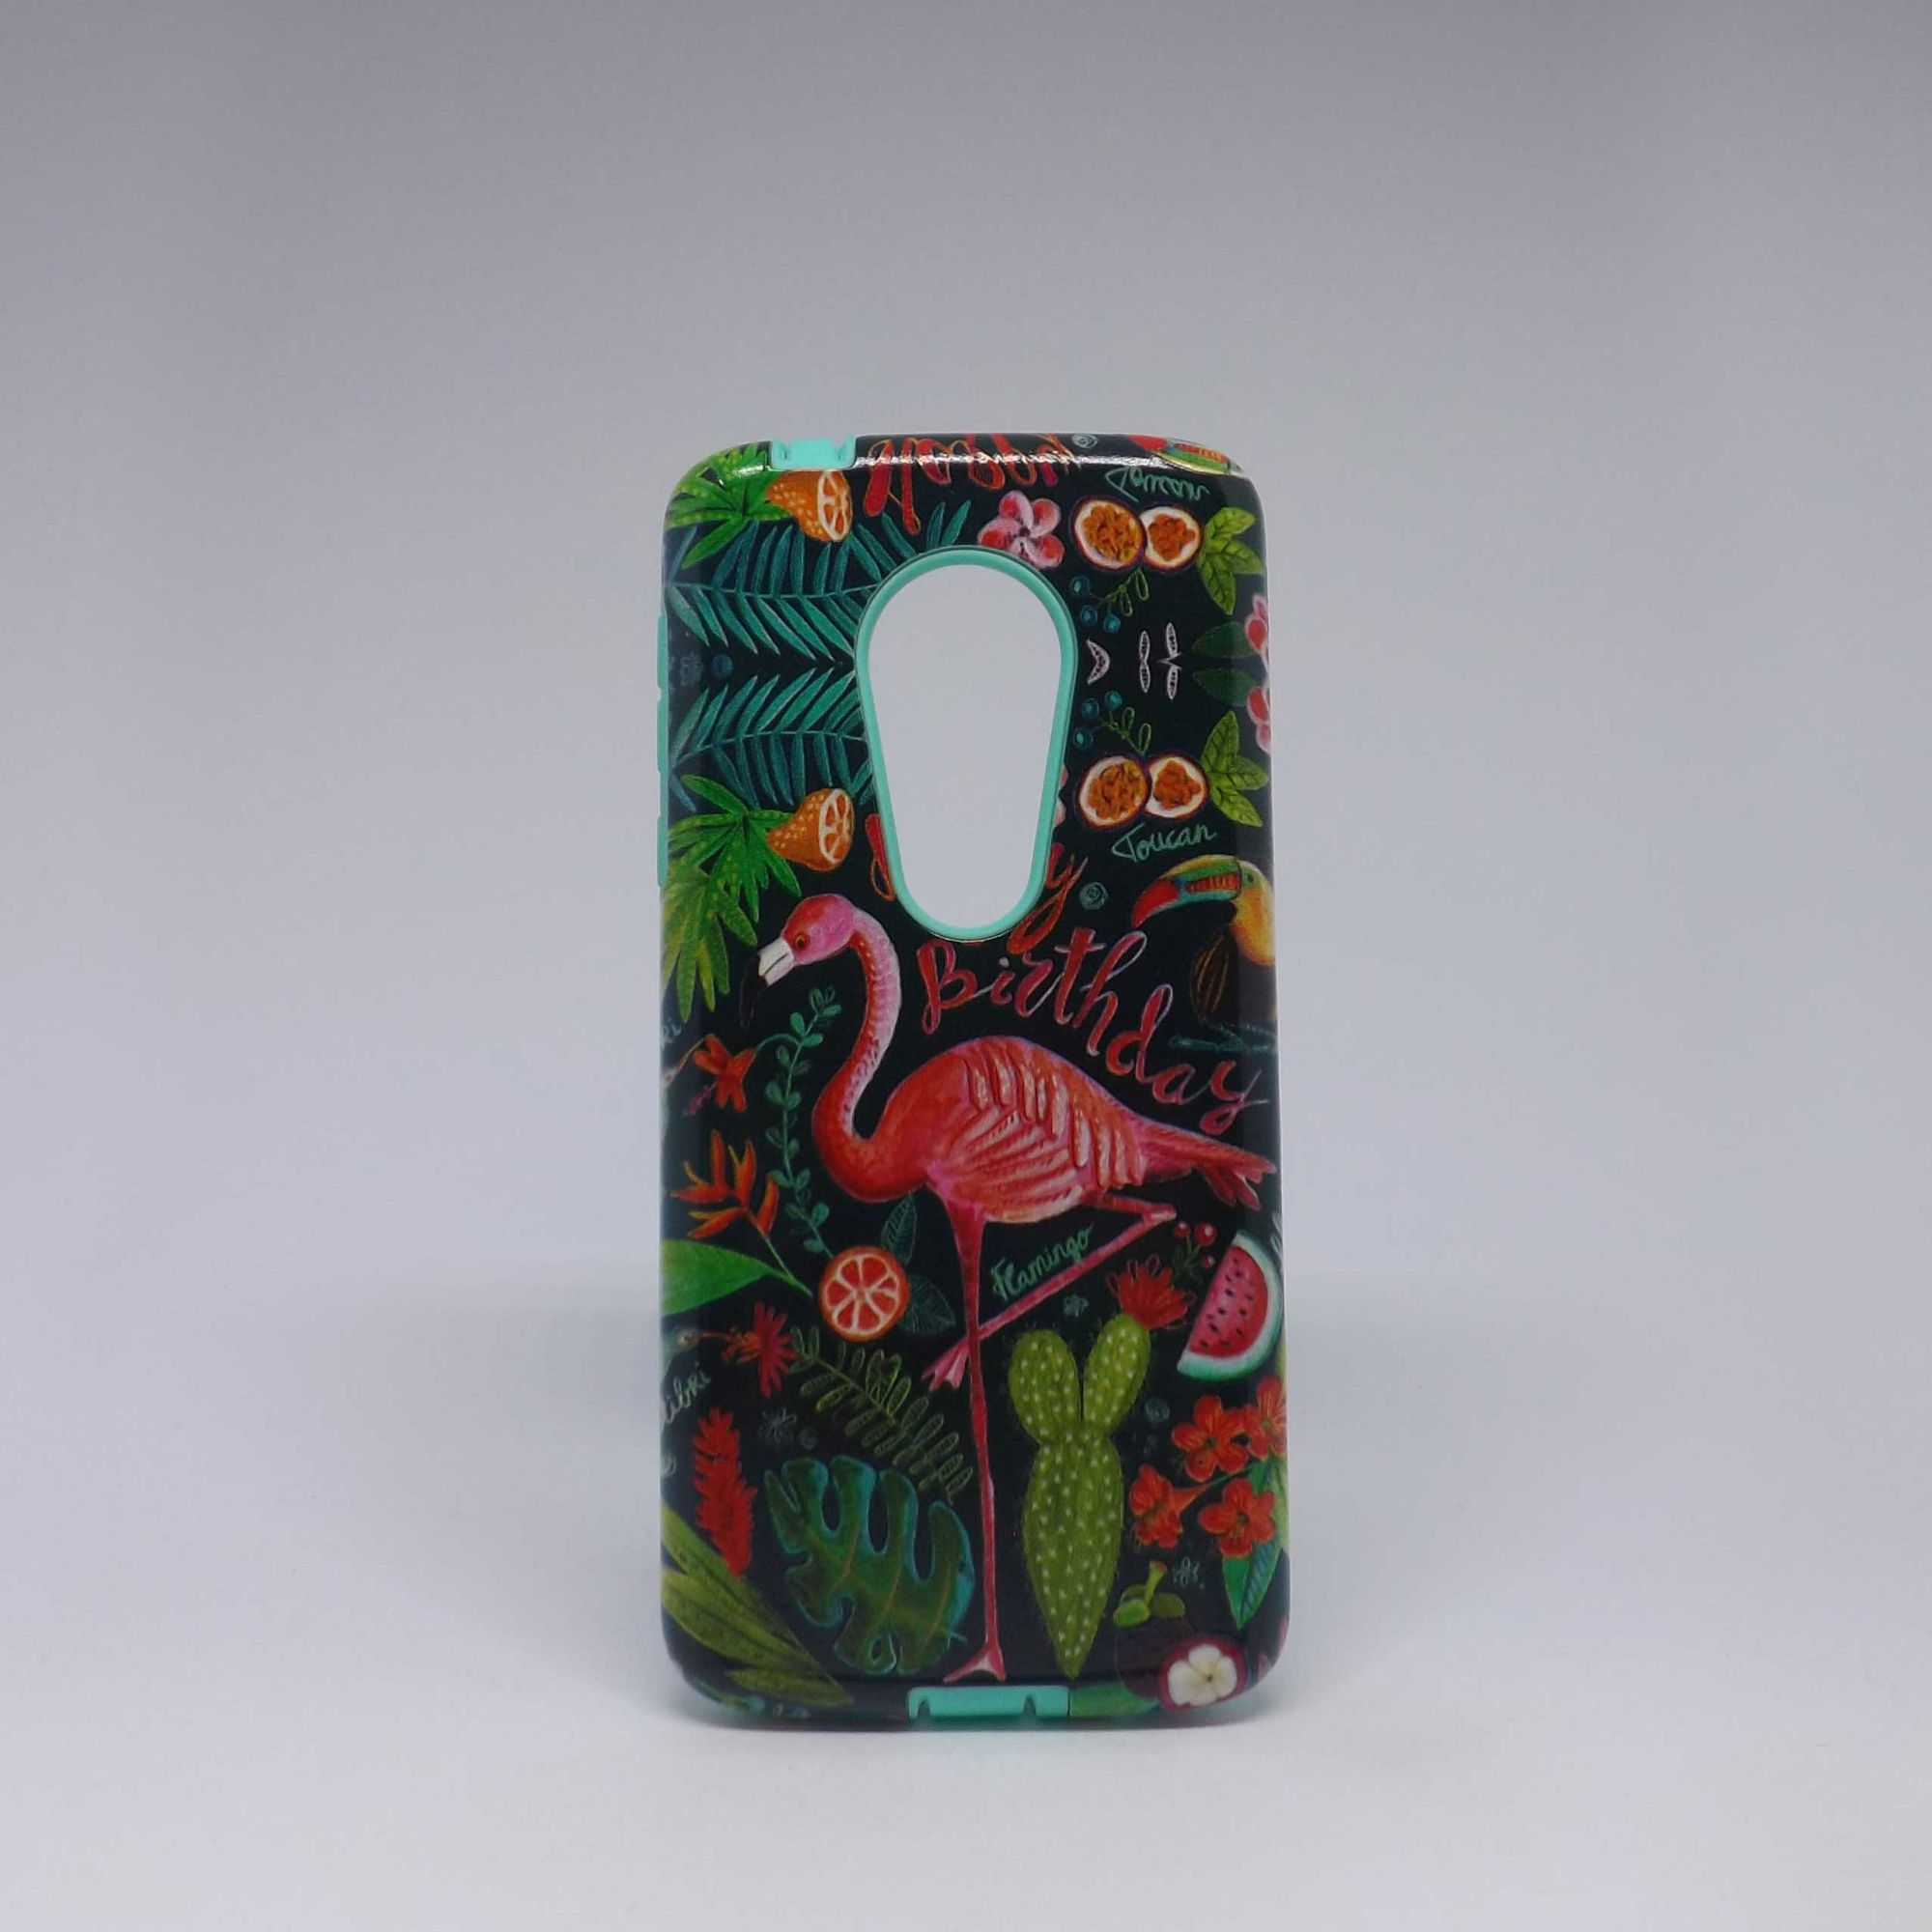 Capa Motorola G6 Play Antiqueda Estampada